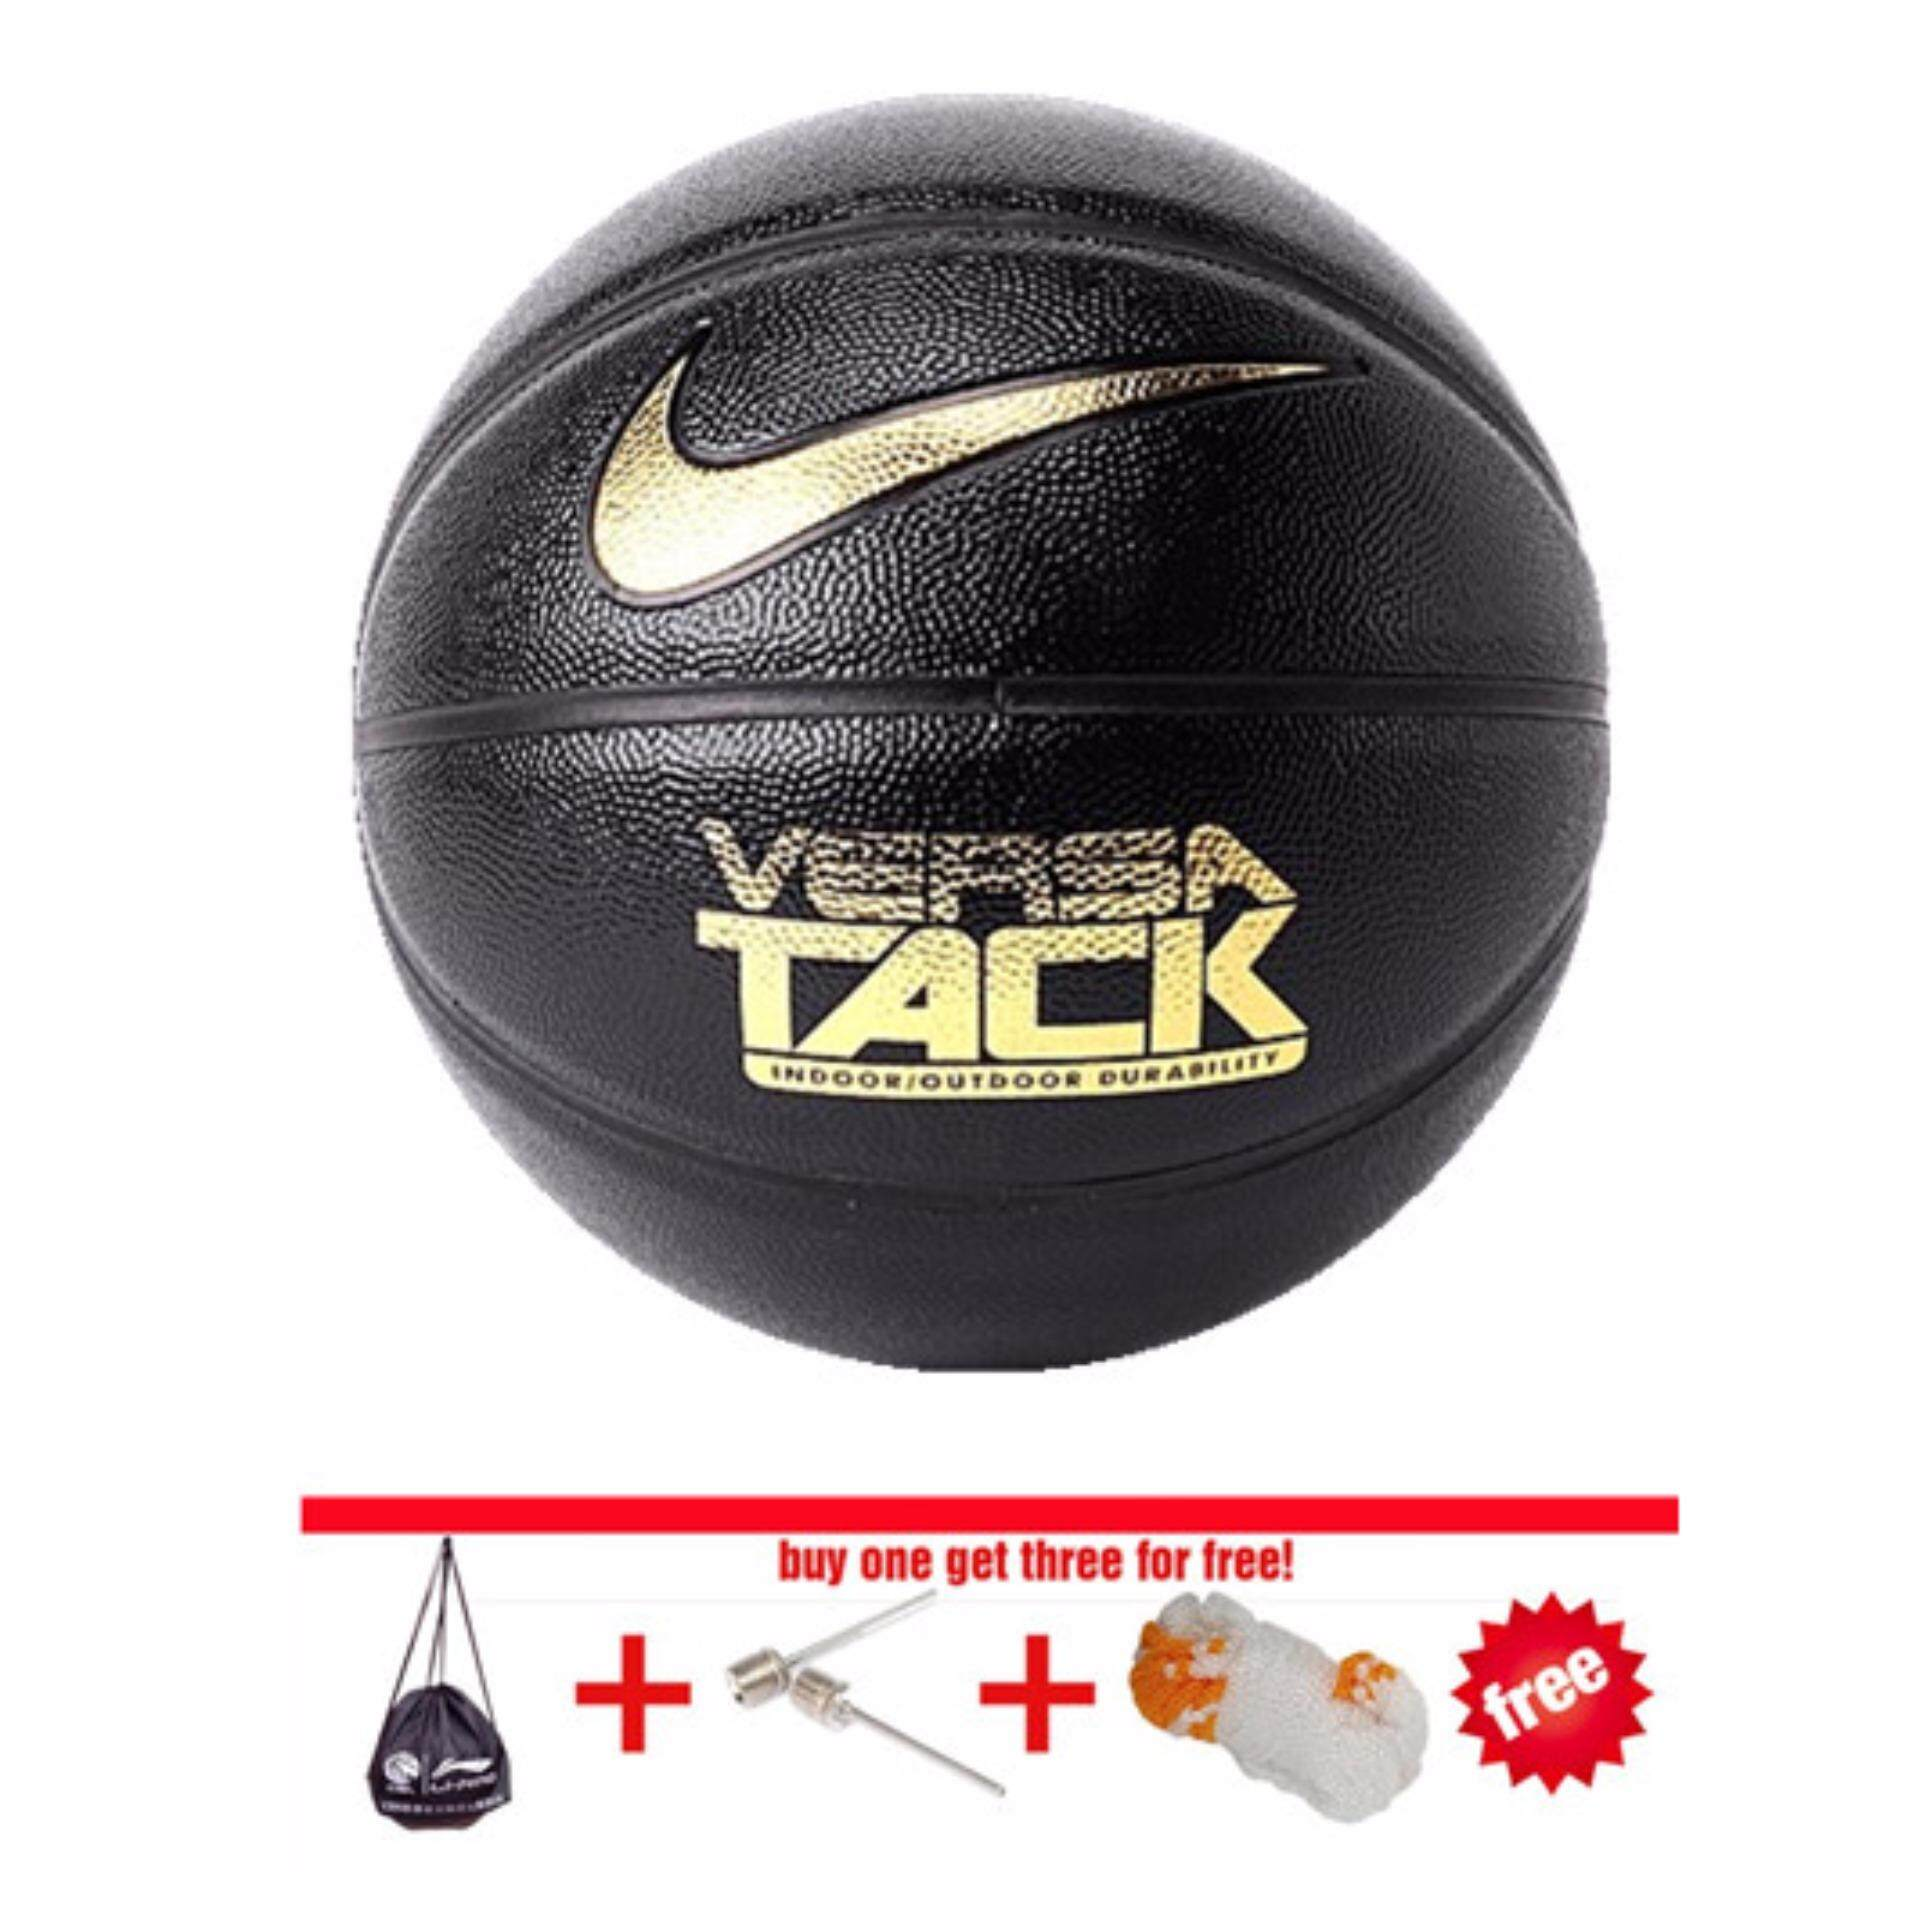 Versa Tack Basketball Indoor And Outdoor Wear Non Slip Leather Size7 Street (black) By Enjoy House.